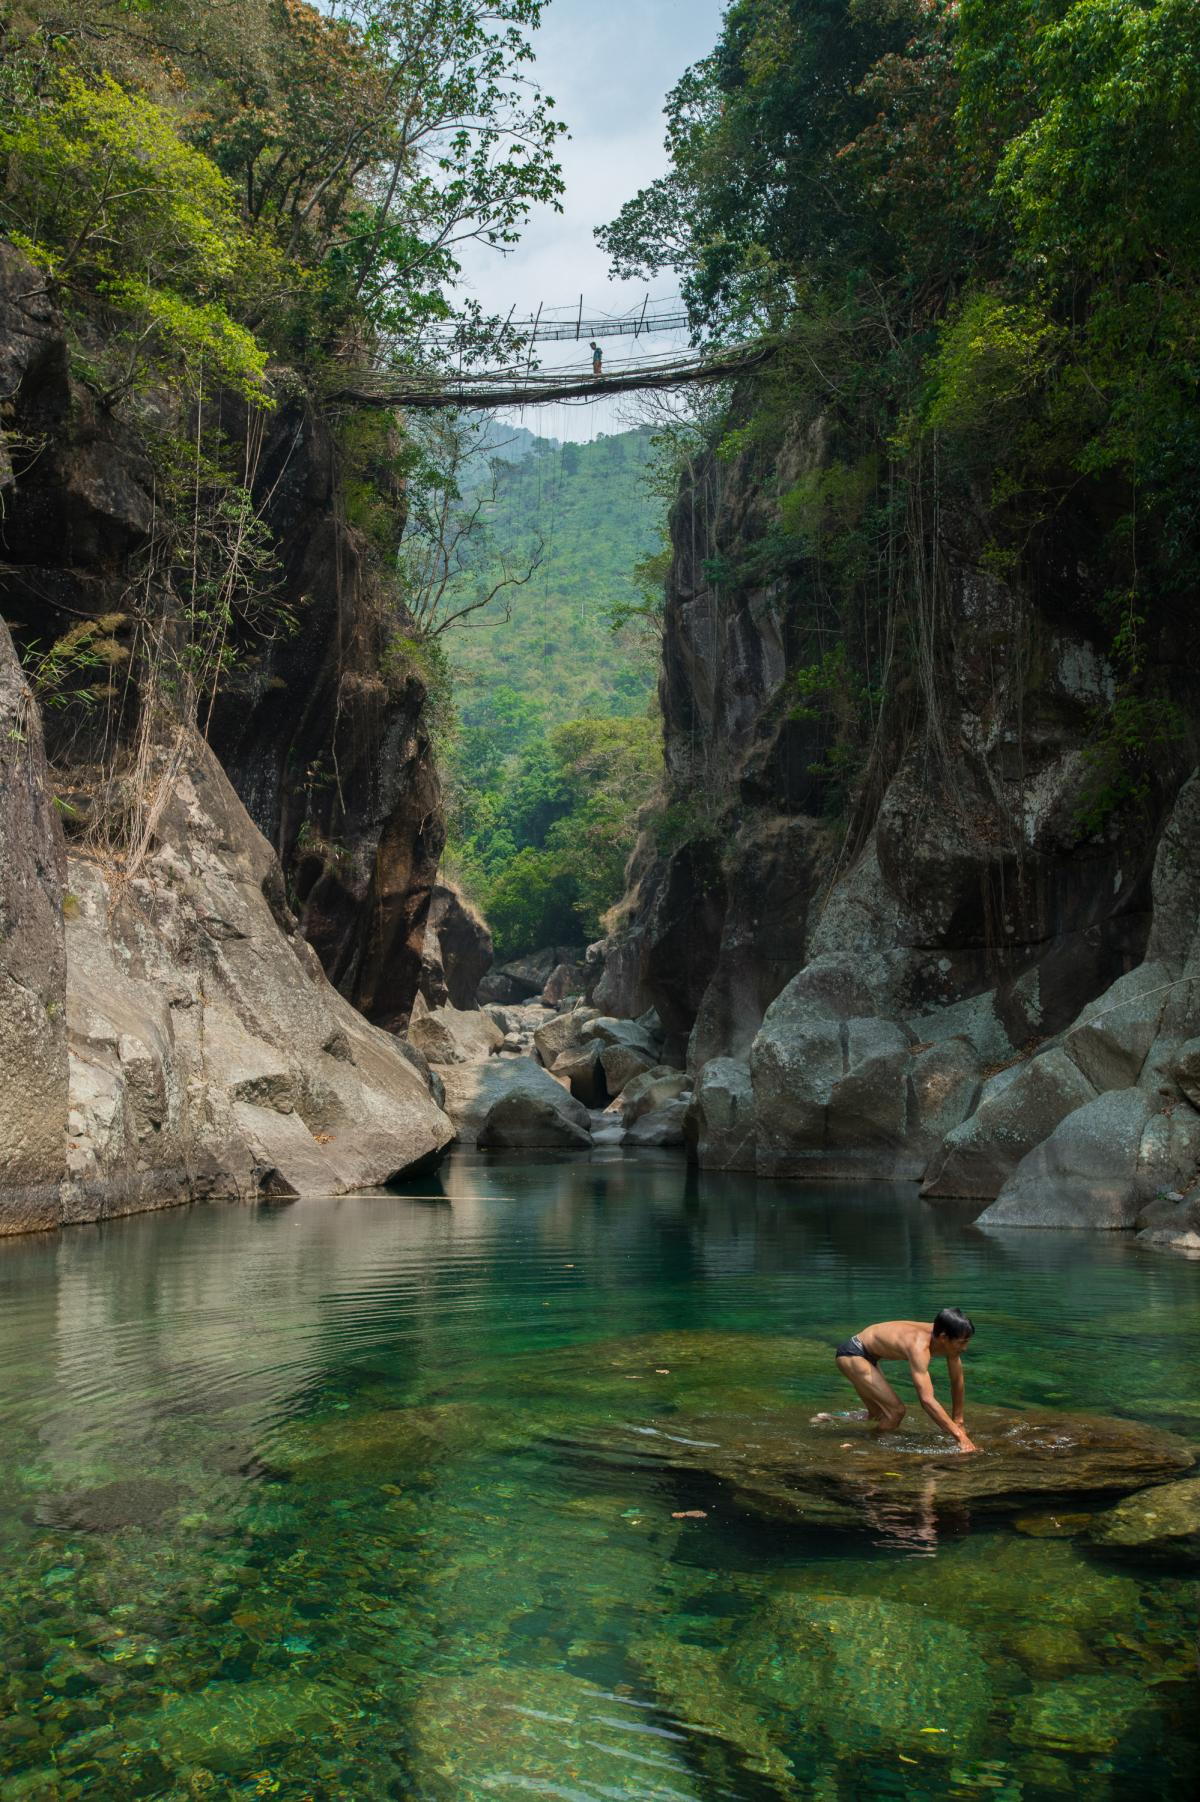 A villager crosses a root bridge over a deep river valley while a man takes a bath in the river's turquoise water. During monsoon season, the water level rises by a few feet, and it becomes impossible to cross the river in the absence of such bridges.